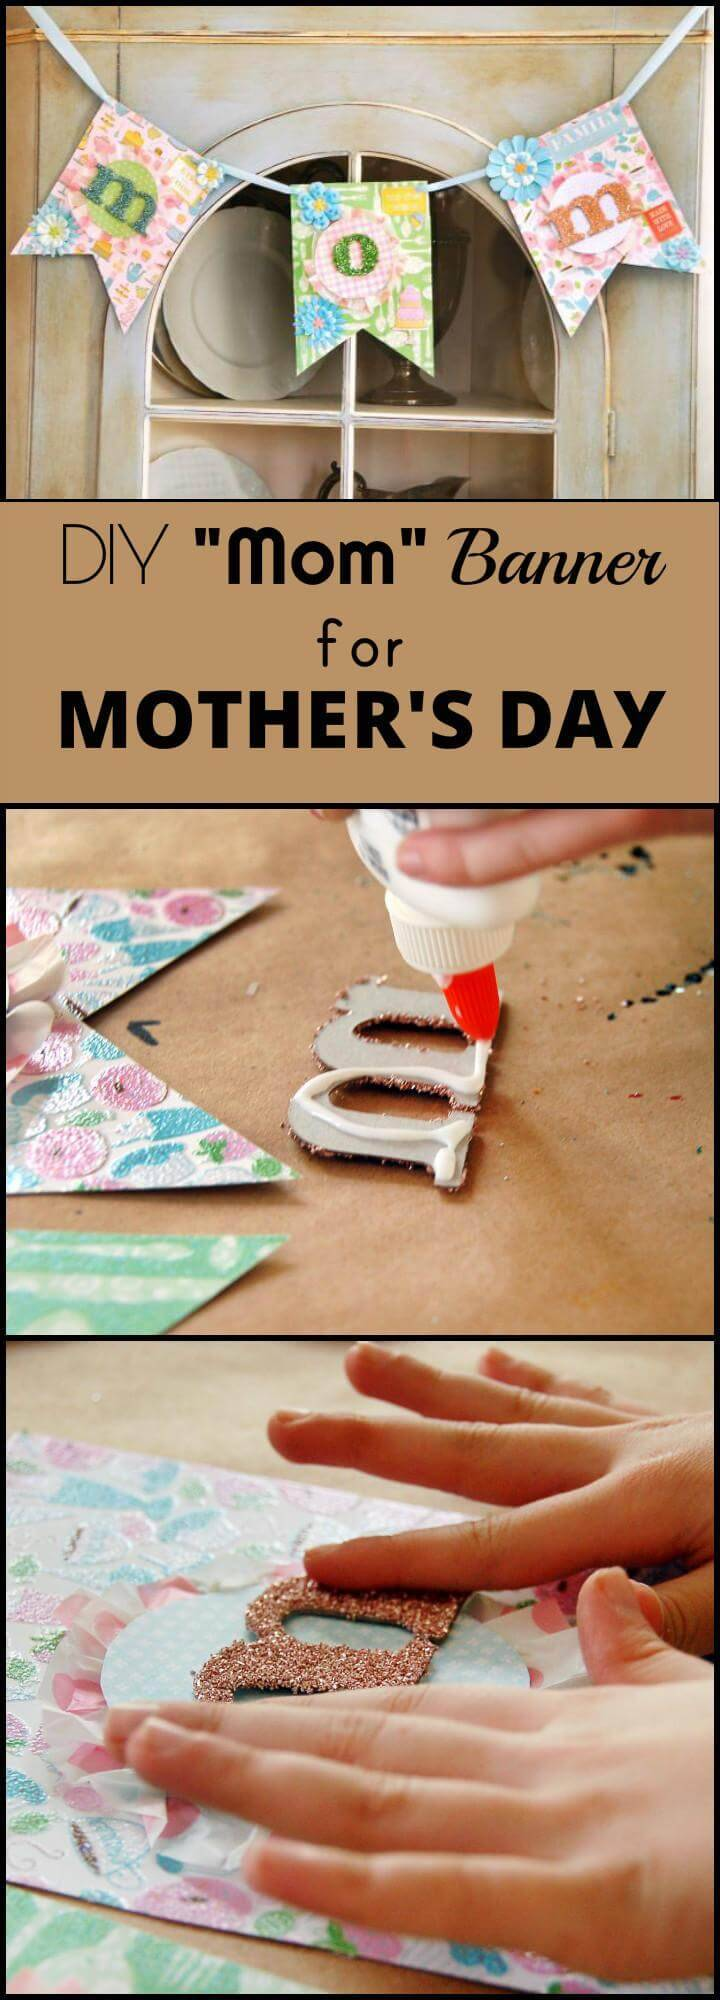 DIY Mom Banner for Mother's Day